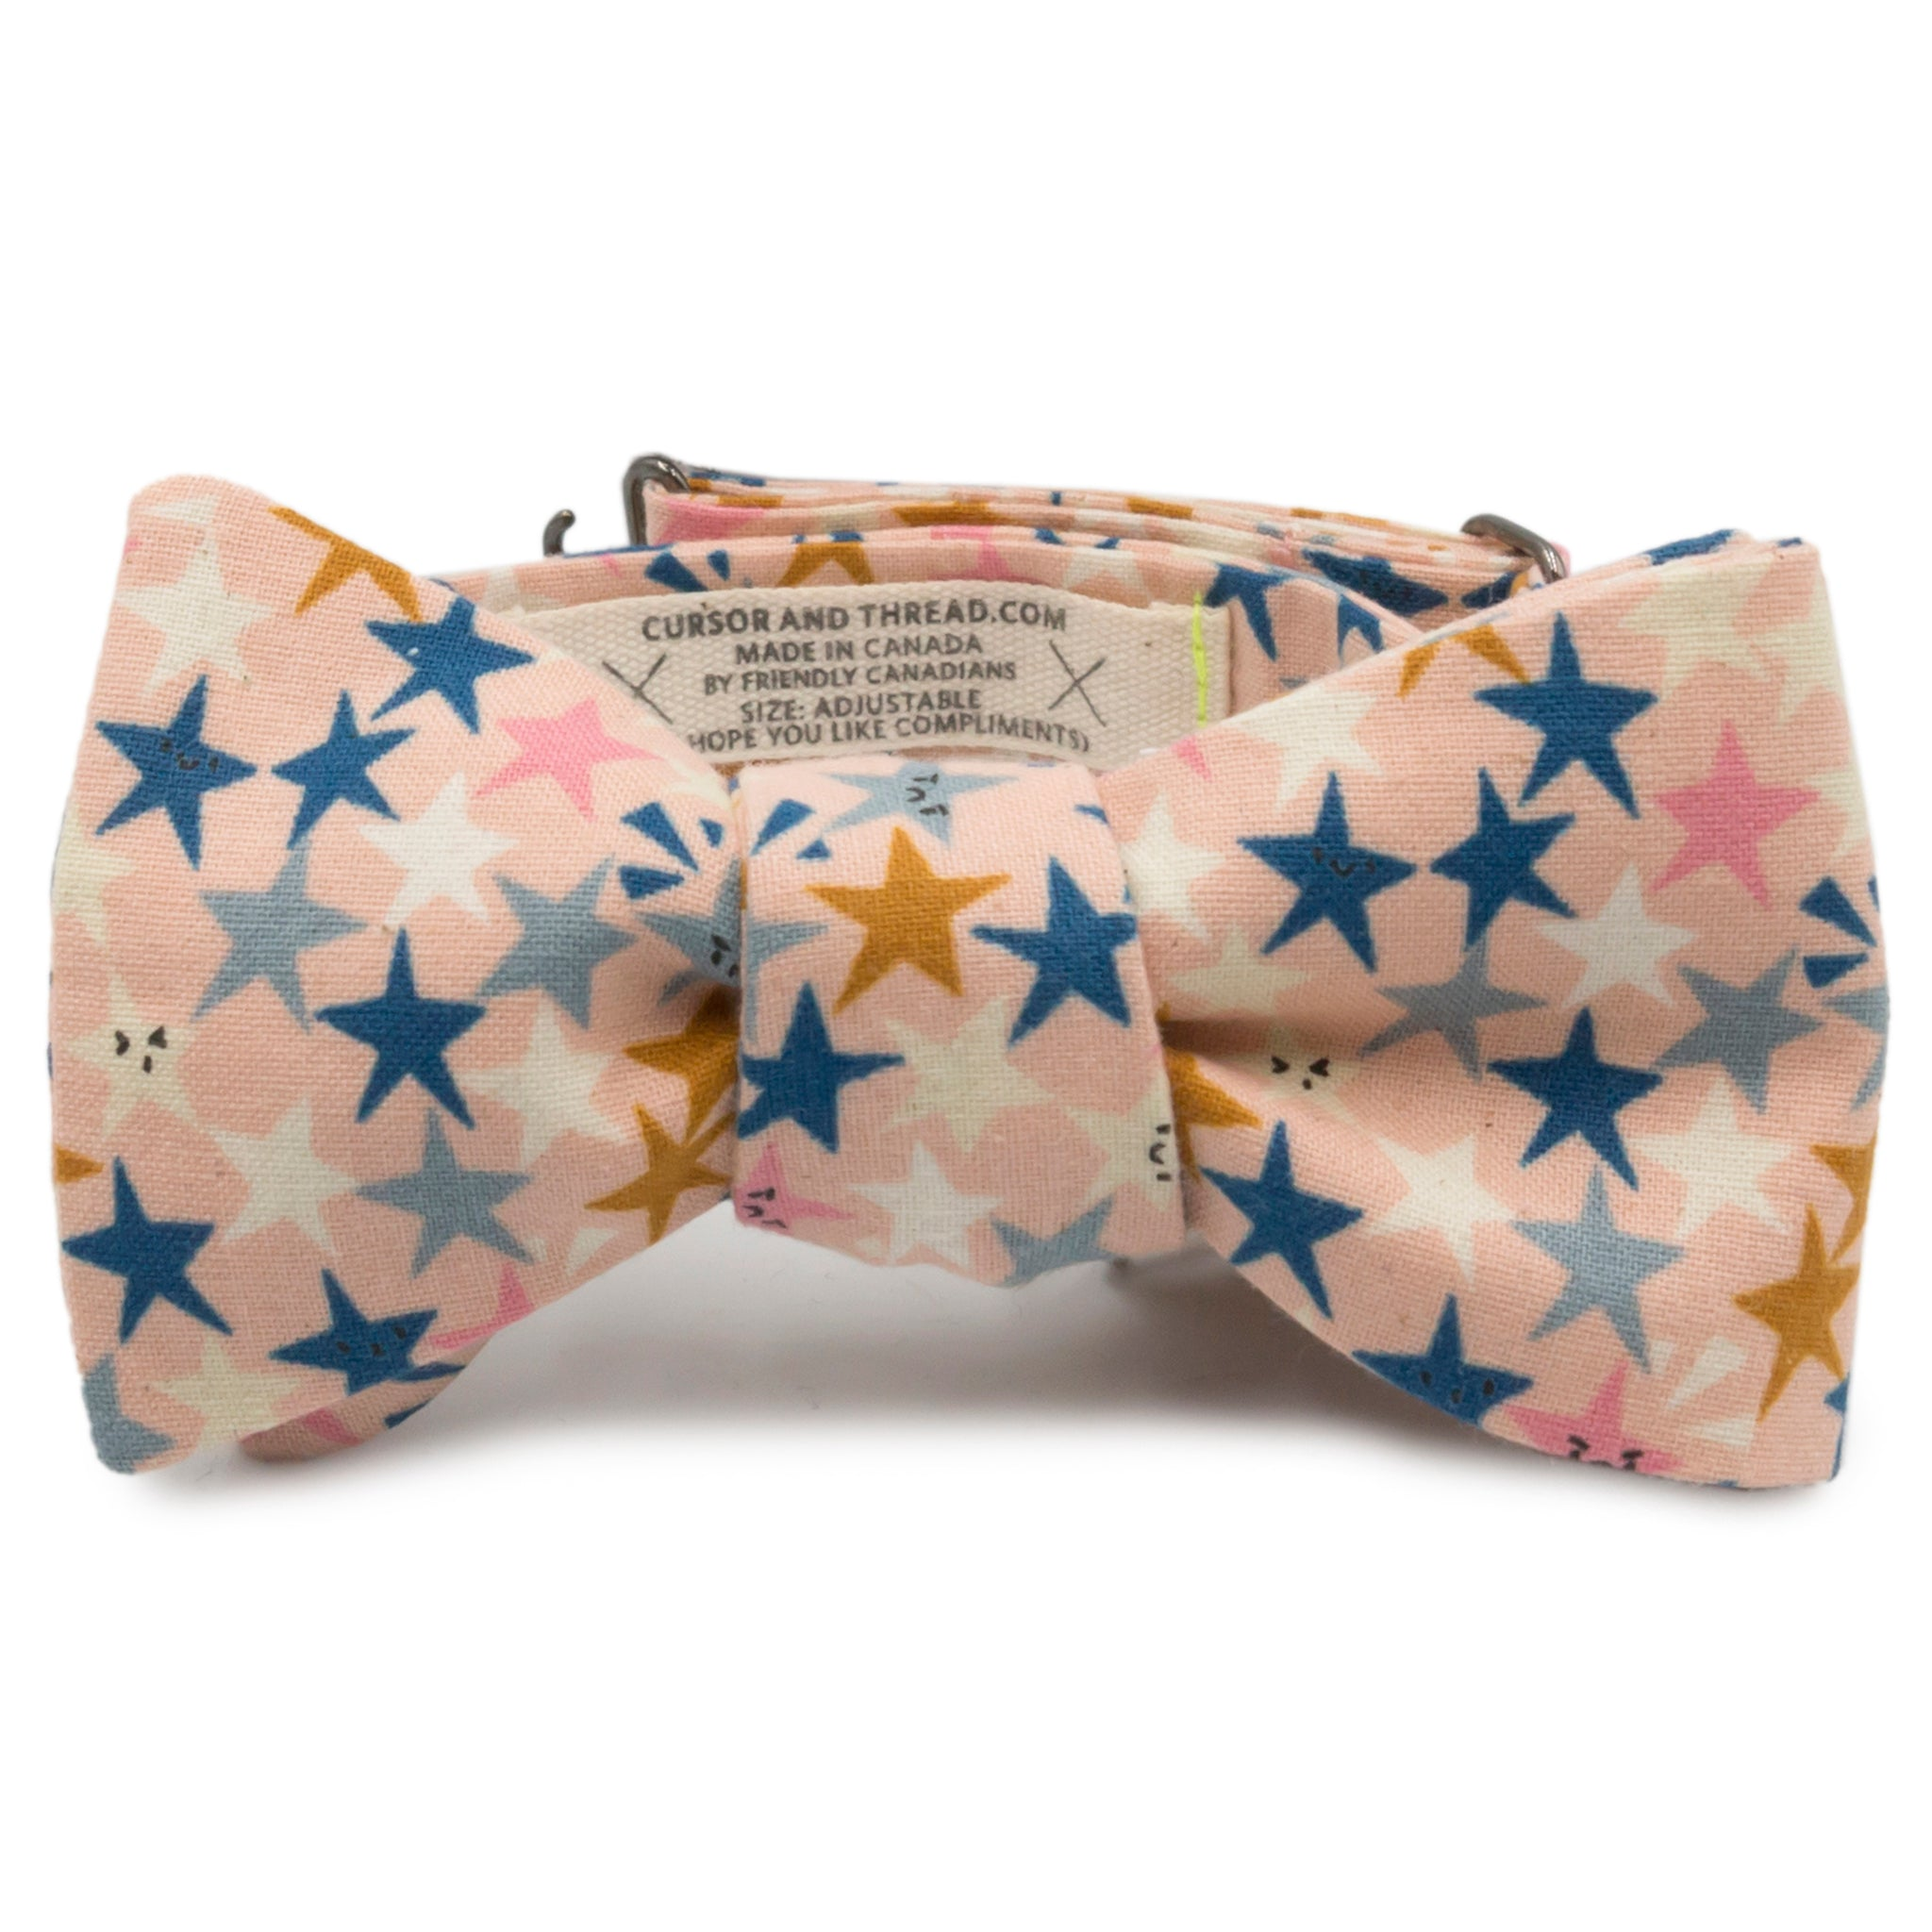 StarFace Pink Cotton Bow Tie Made in Canada by Cursor & Thread